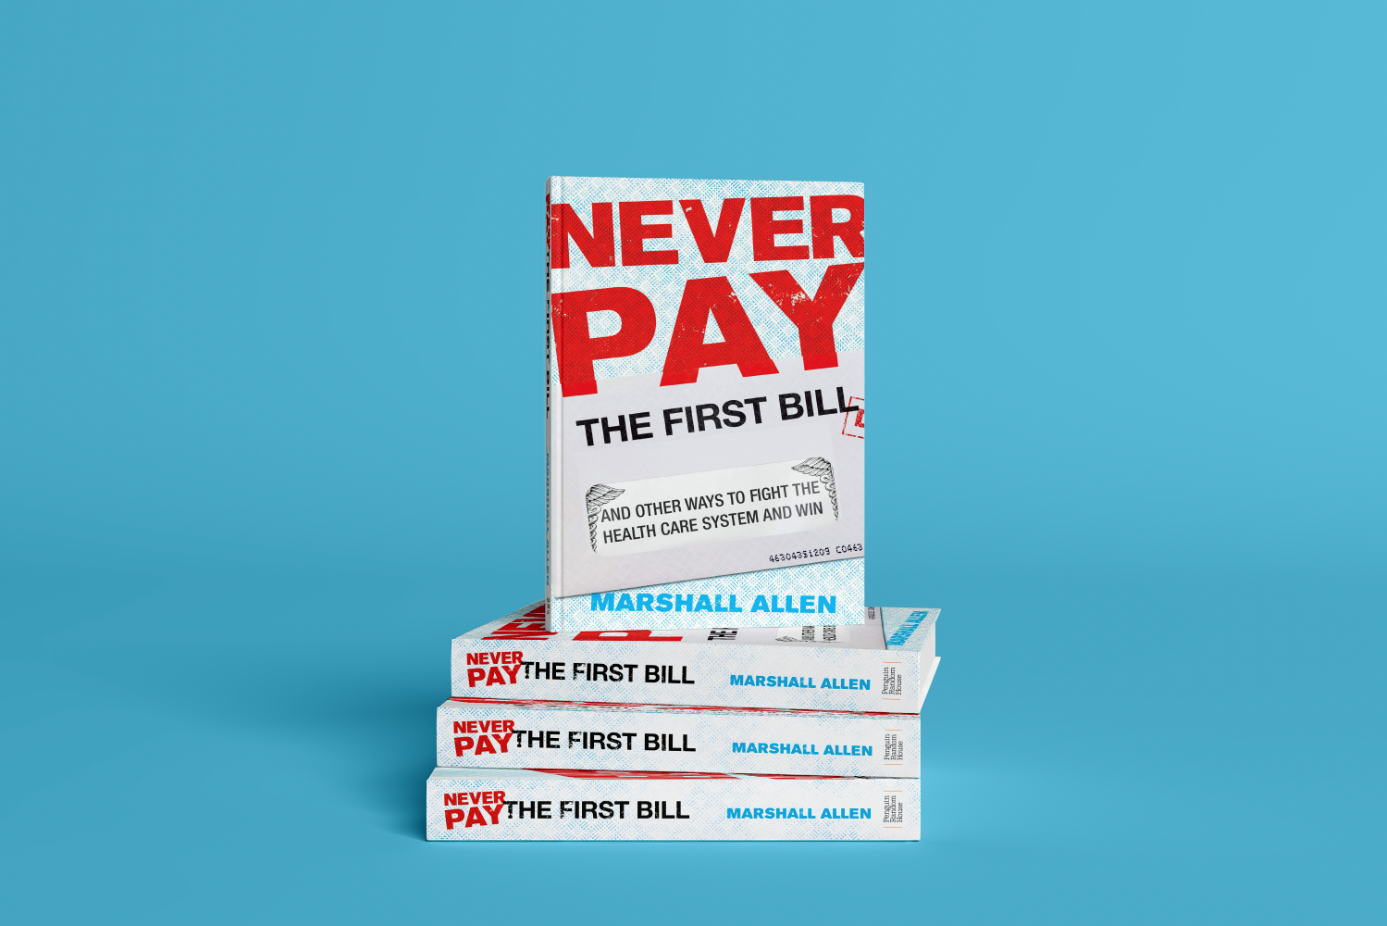 Got a Medical Bill in the Mail? Don't Pay It Until You Read This Book